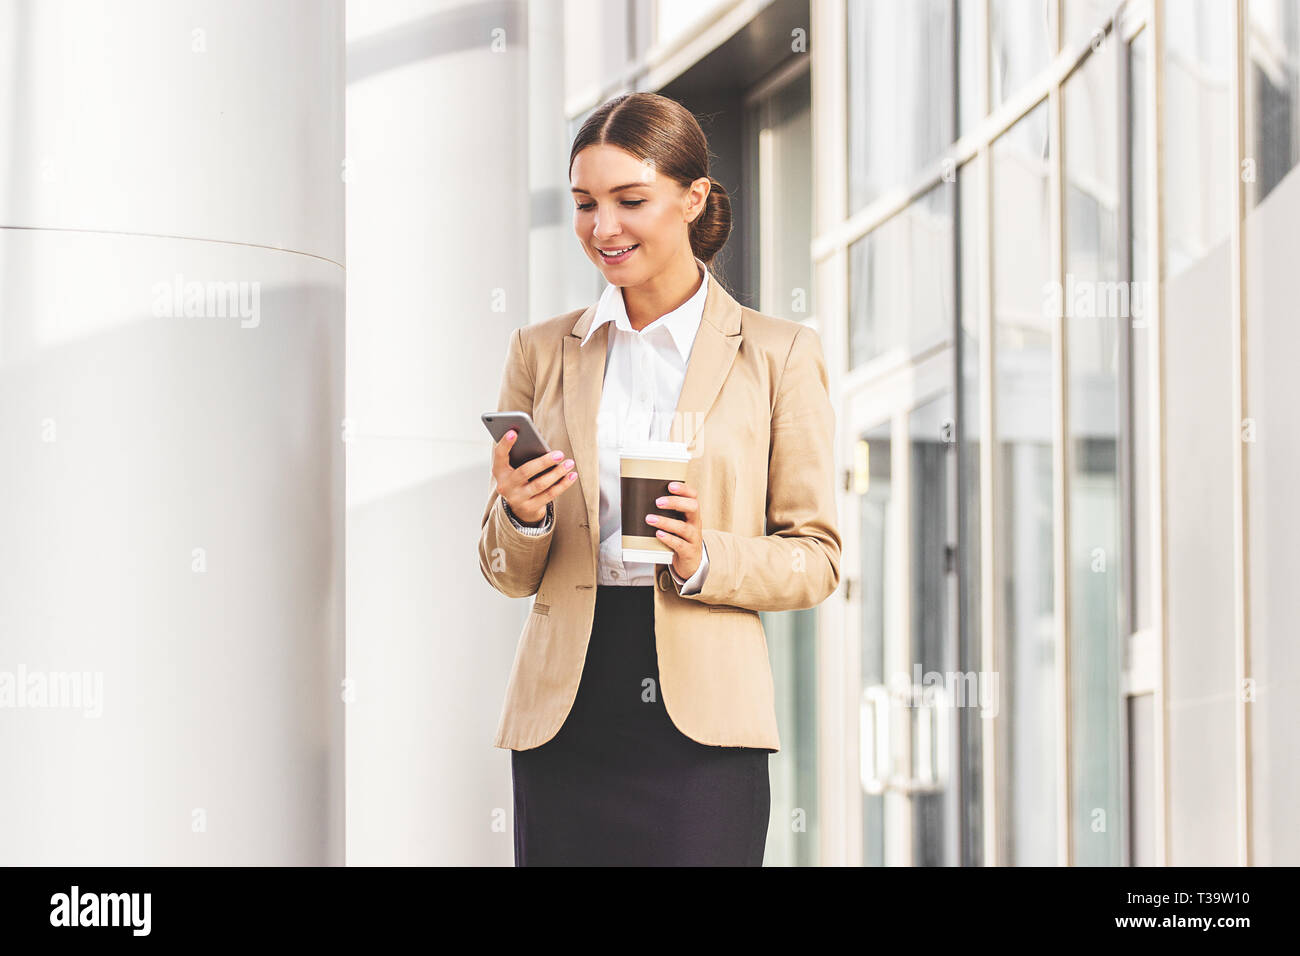 Always in touch with colleagues. Portrait of young and beautiful business woman in suit using her smart phone and keeping cup of coffee in hand while  - Stock Image